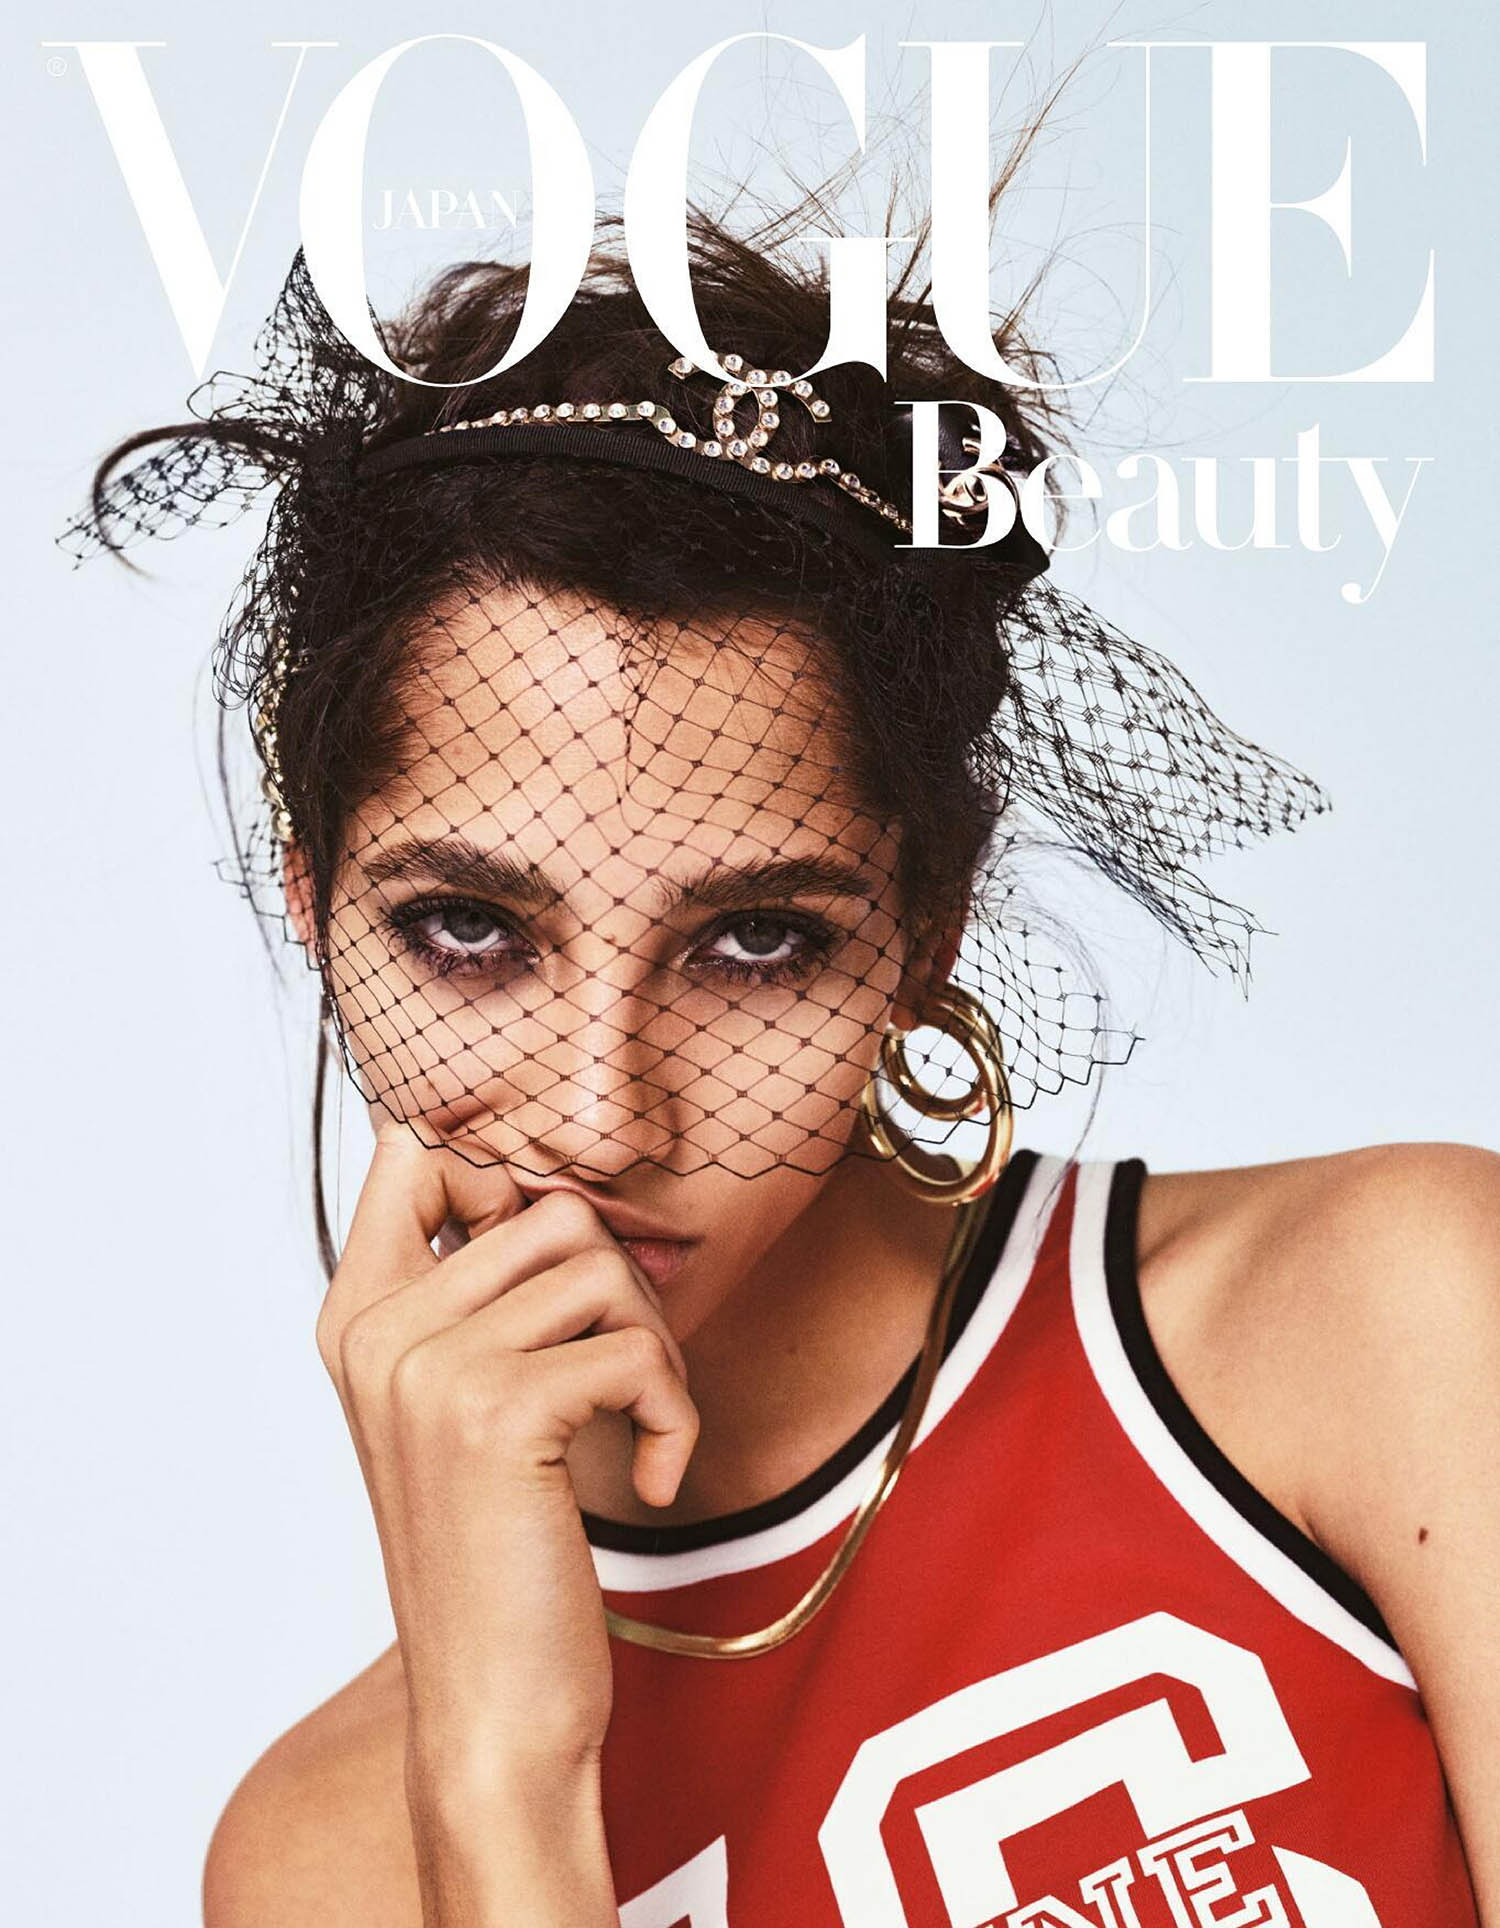 Yasmin Wijnaldum covers Vogue Beauty Japan March 2021 by Yulia Gorbachenko